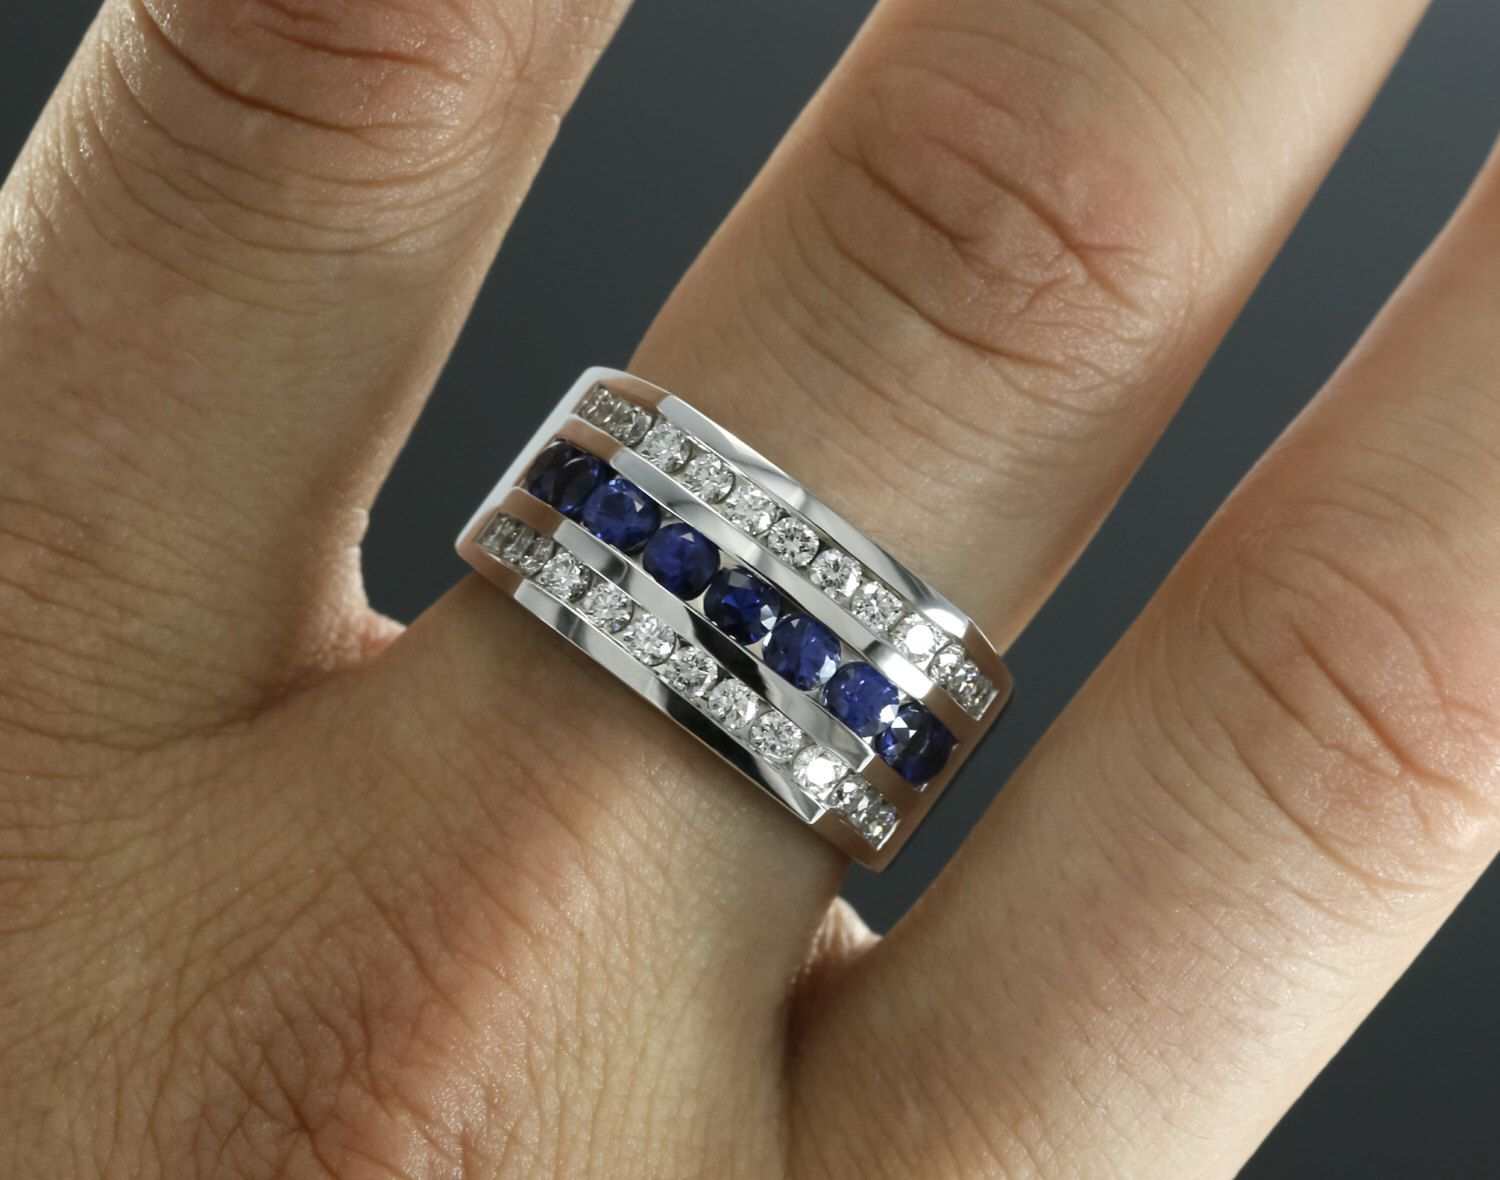 12mm Wide Diamond And Blue Sapphire Men S Wedding Band In Etsy In 2020 Wedding Ring Bands White Gold Blue Sapphire